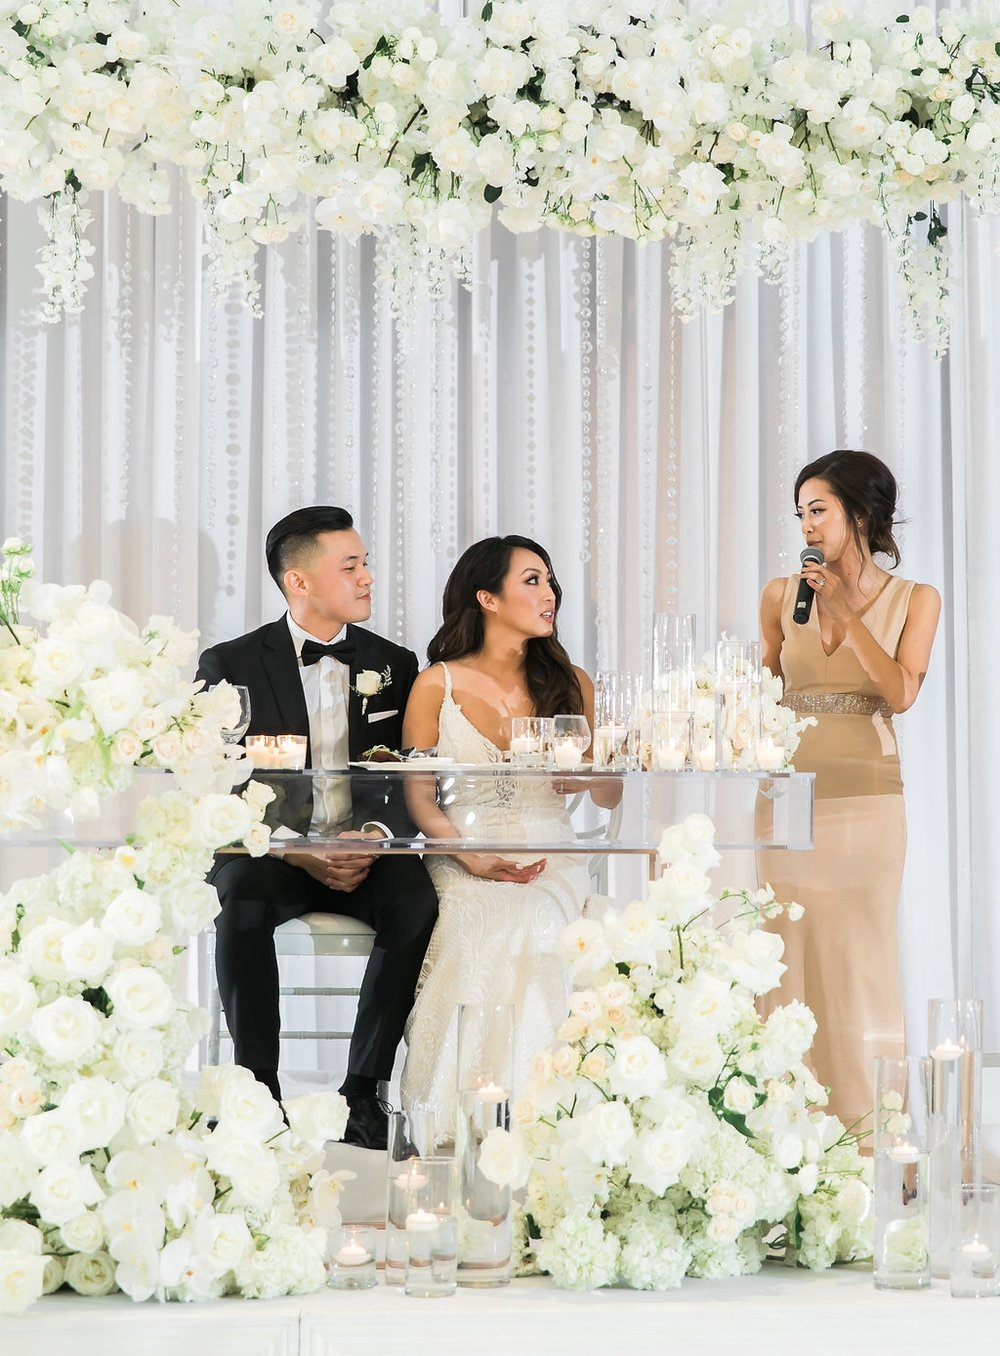 HNP_CuongElaineWedding_April2018-49.jpg